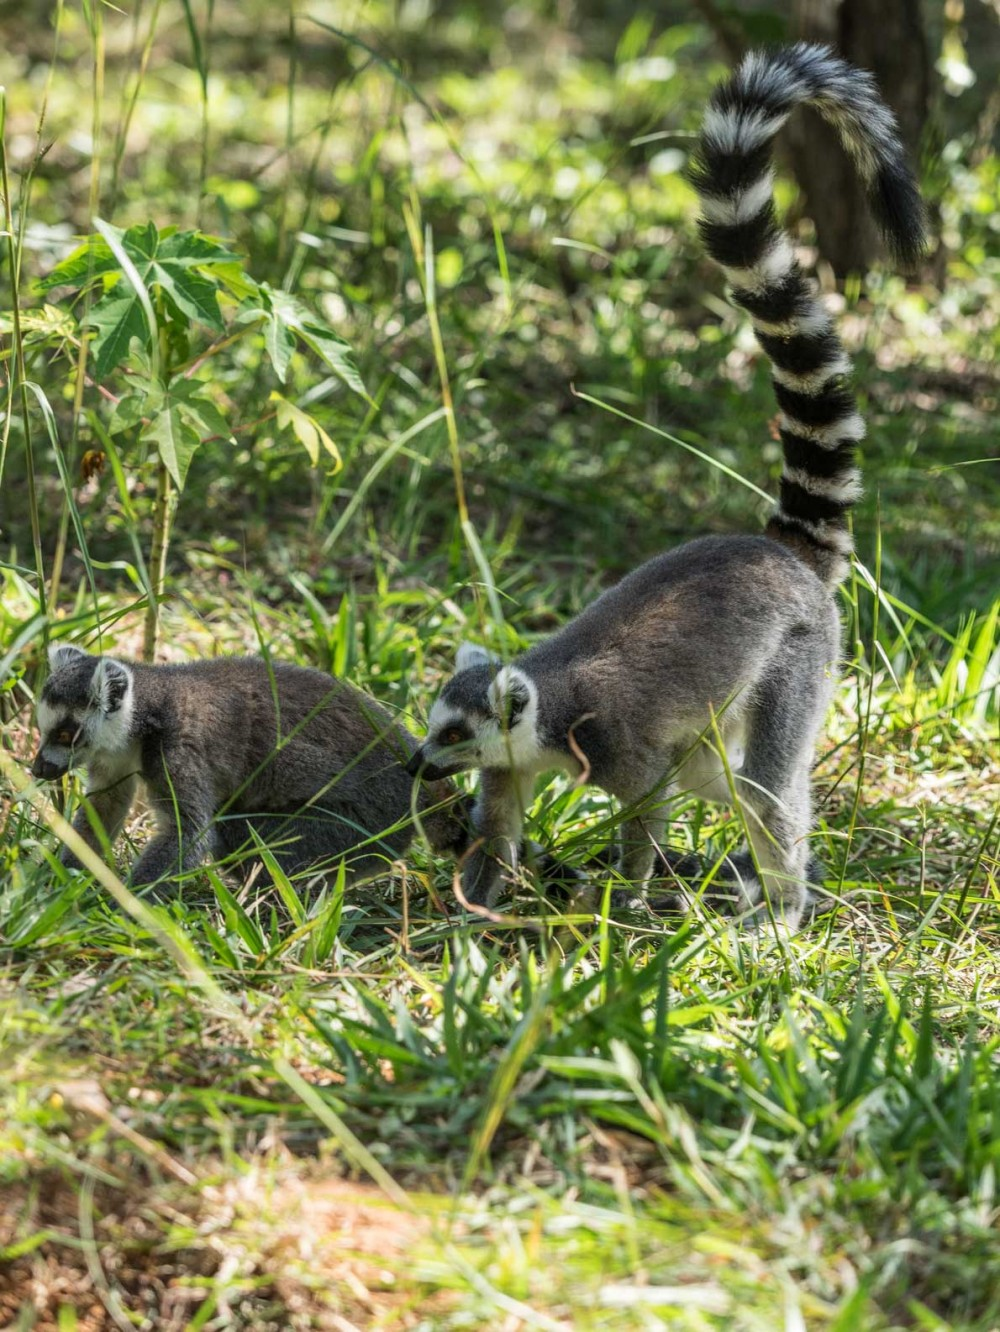 Probably the most famous of all Lemur species The Ring-tailed lemur